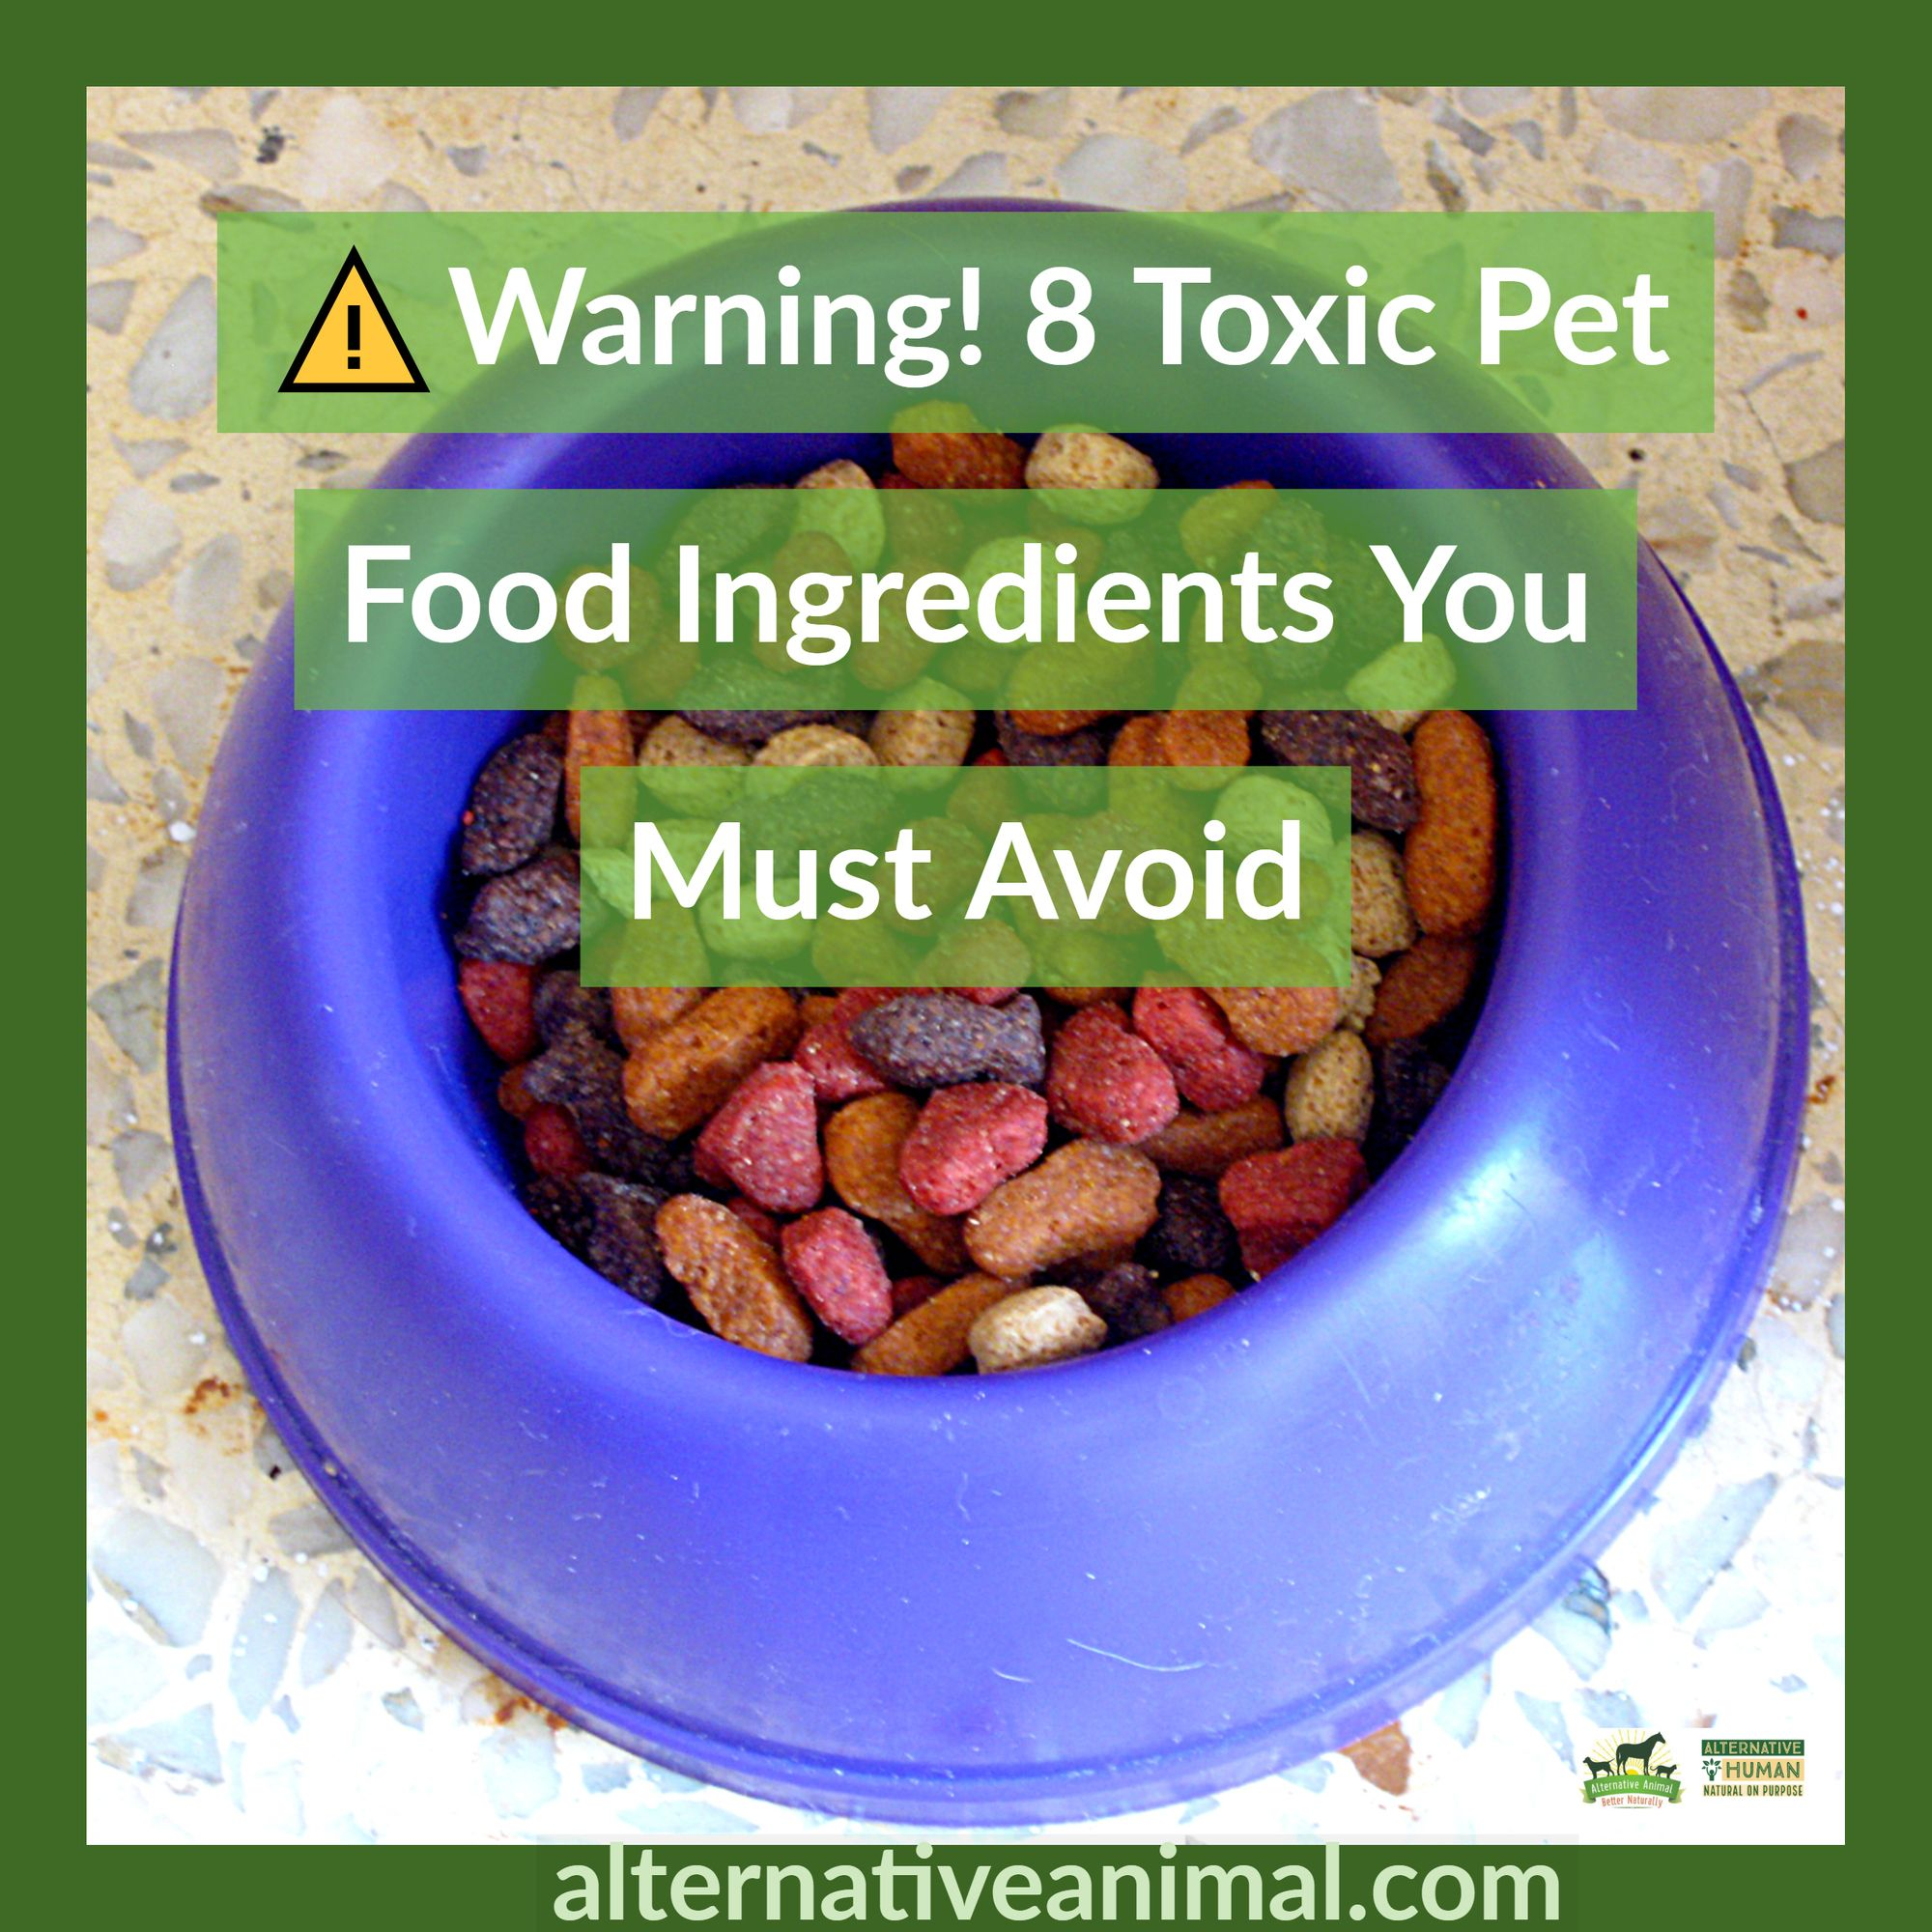 Warning 8 Toxic Pet Food Ingredients You Must Avoid